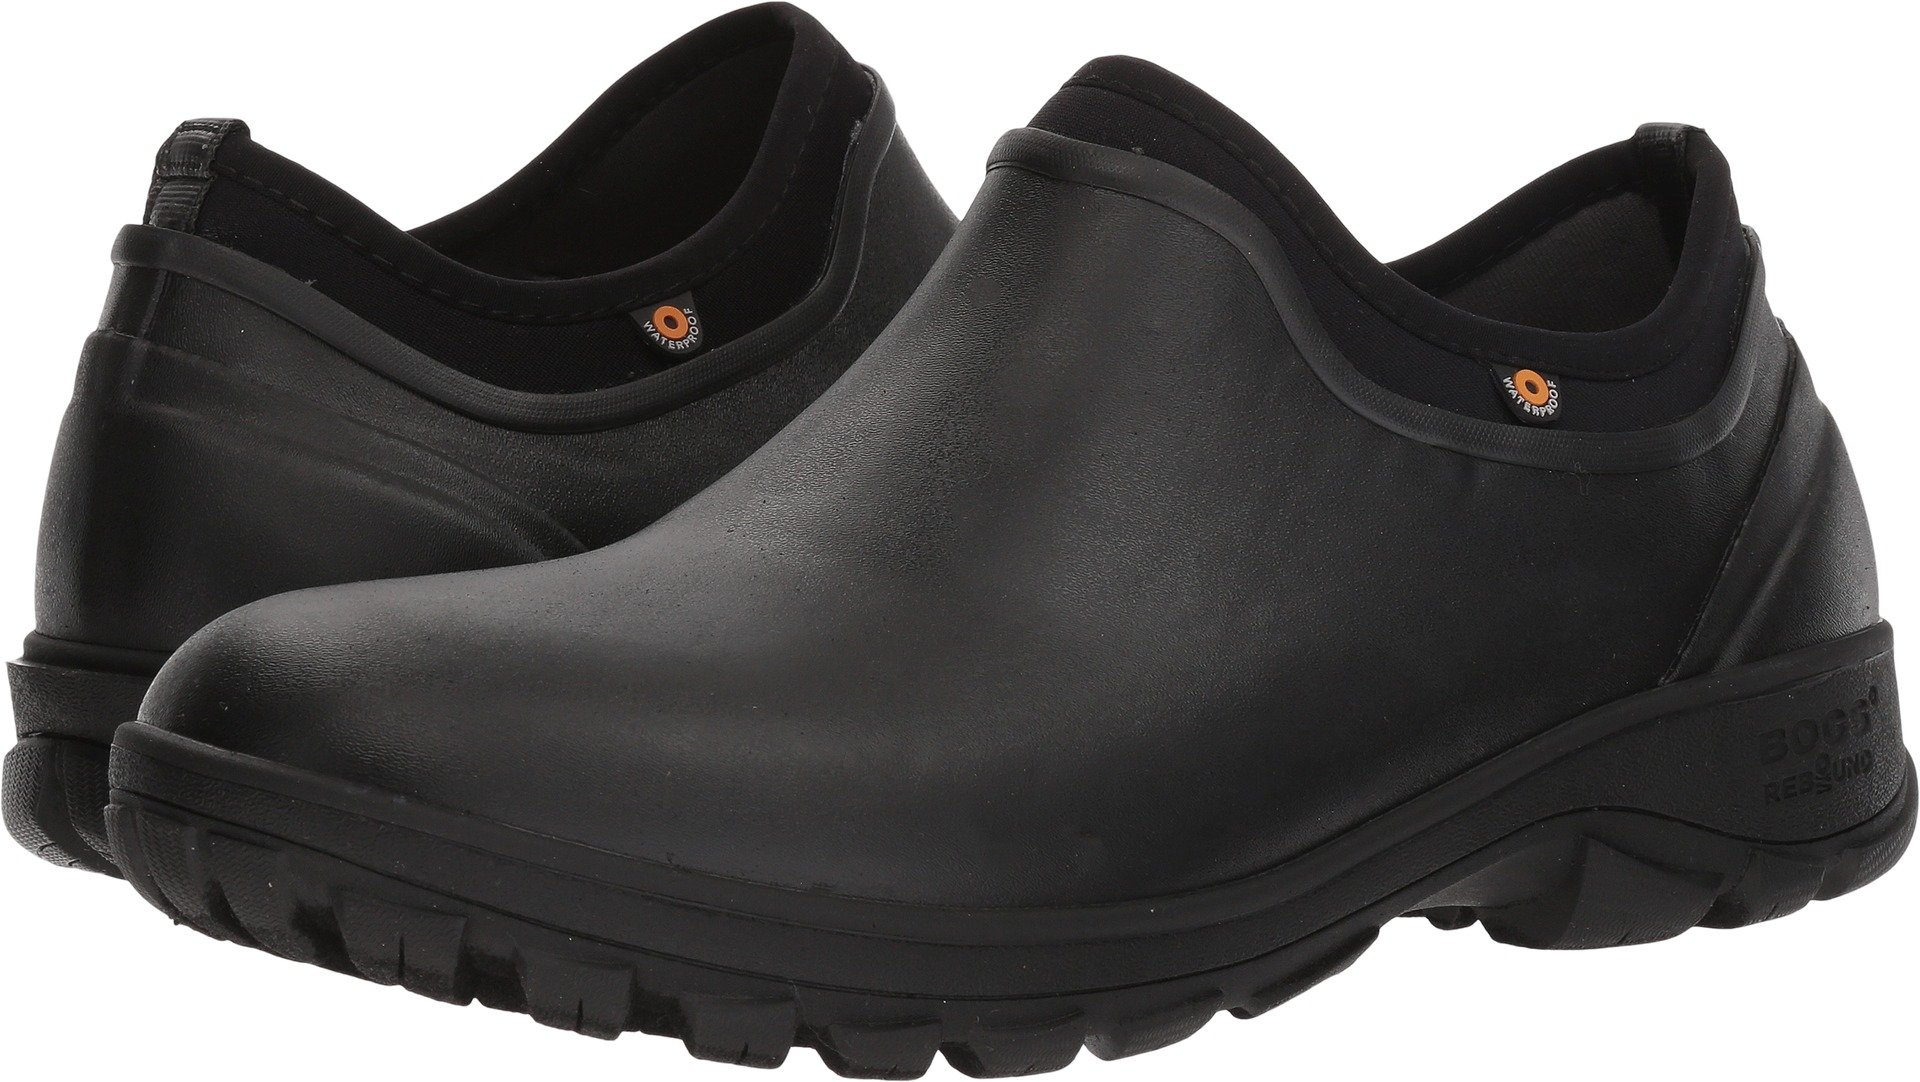 Bogs Men's Sauvie Slip On Soft Toe Rain Boot, Black, 11 D(M) US by Bogs